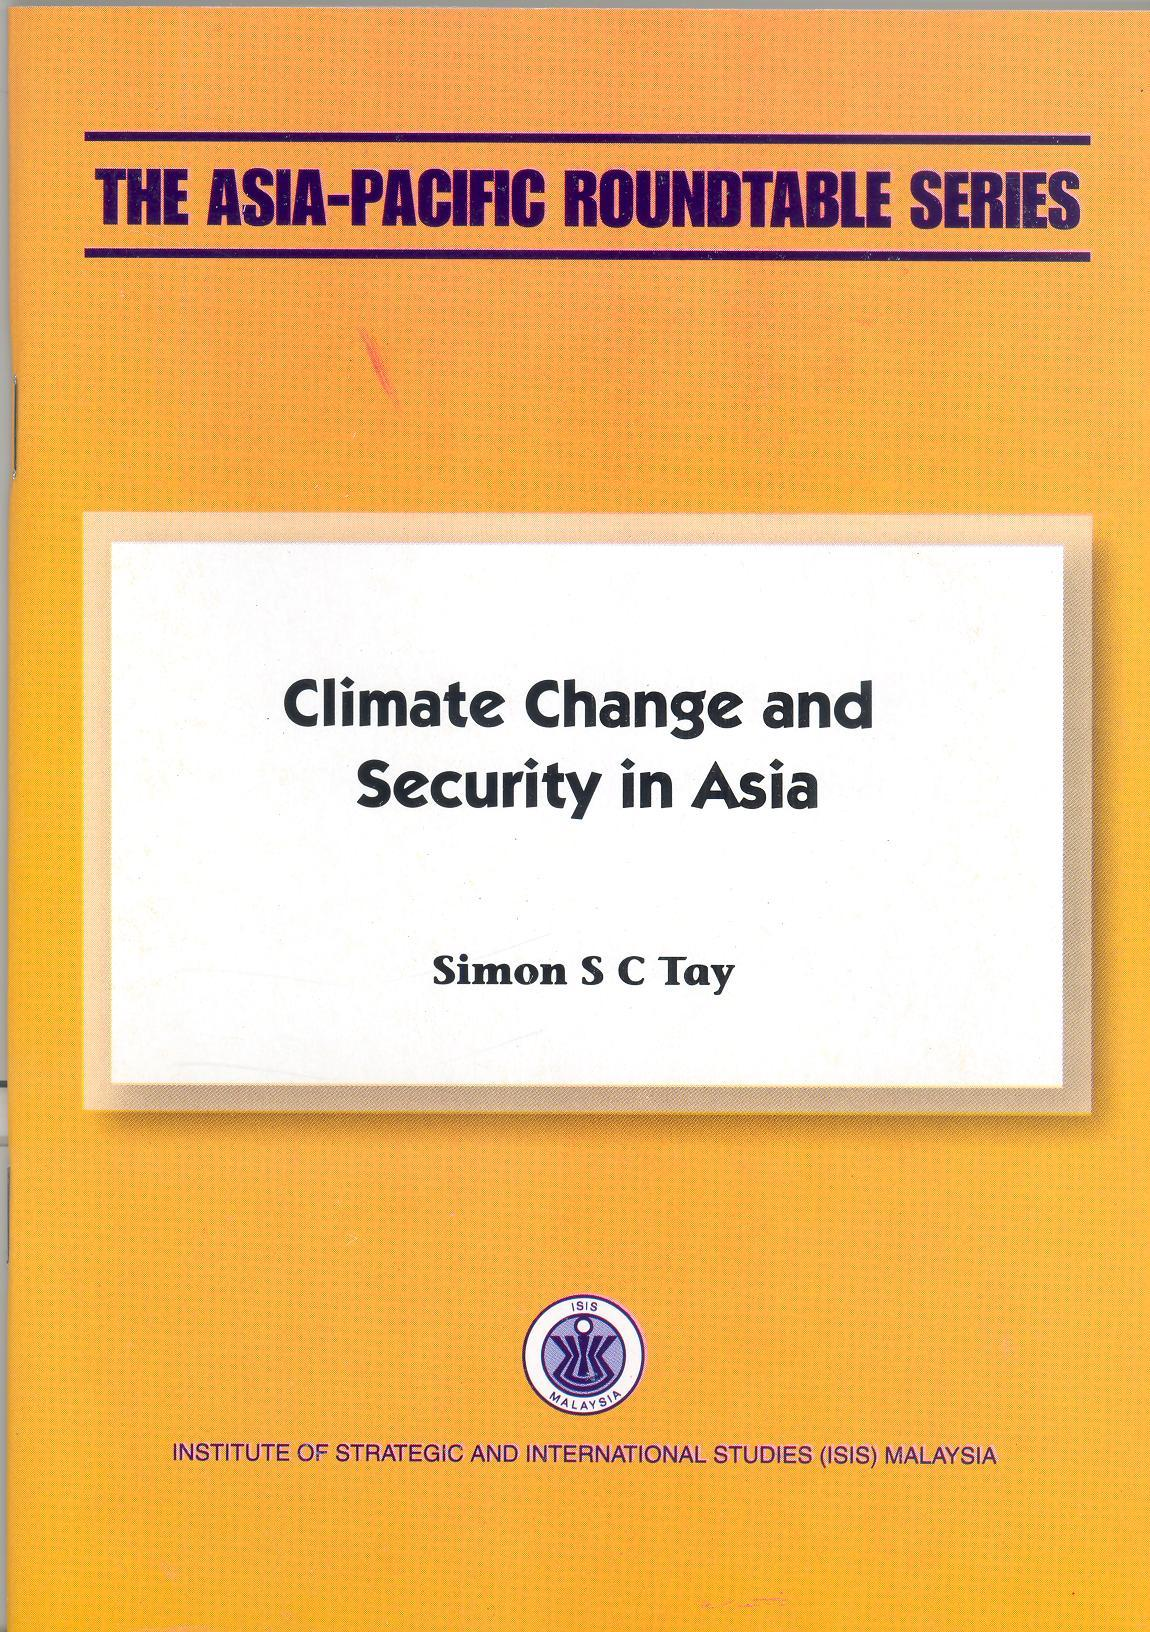 CLIMATE CHANGE AND SECURITY IN ASIA